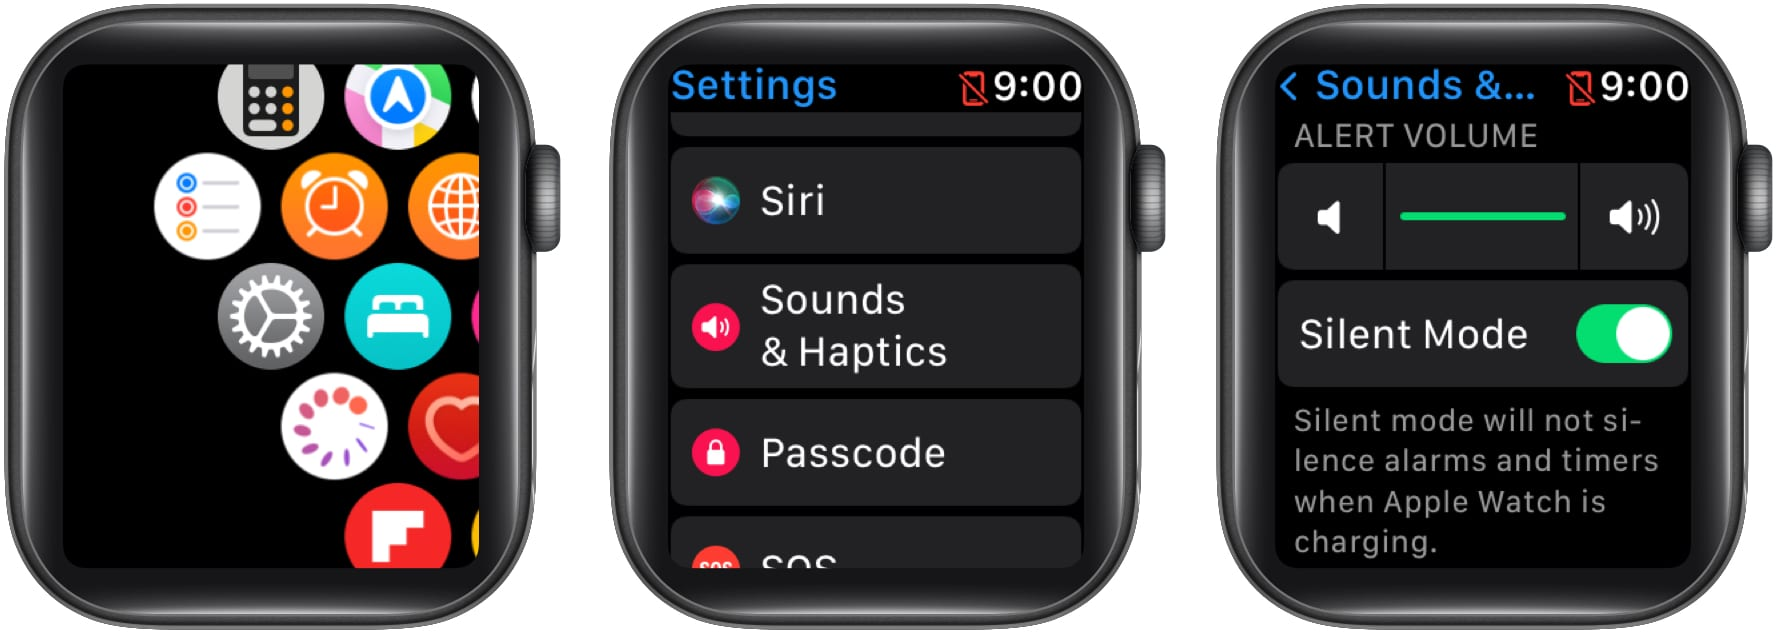 Toggle ON Silent Mode on Apple Watch